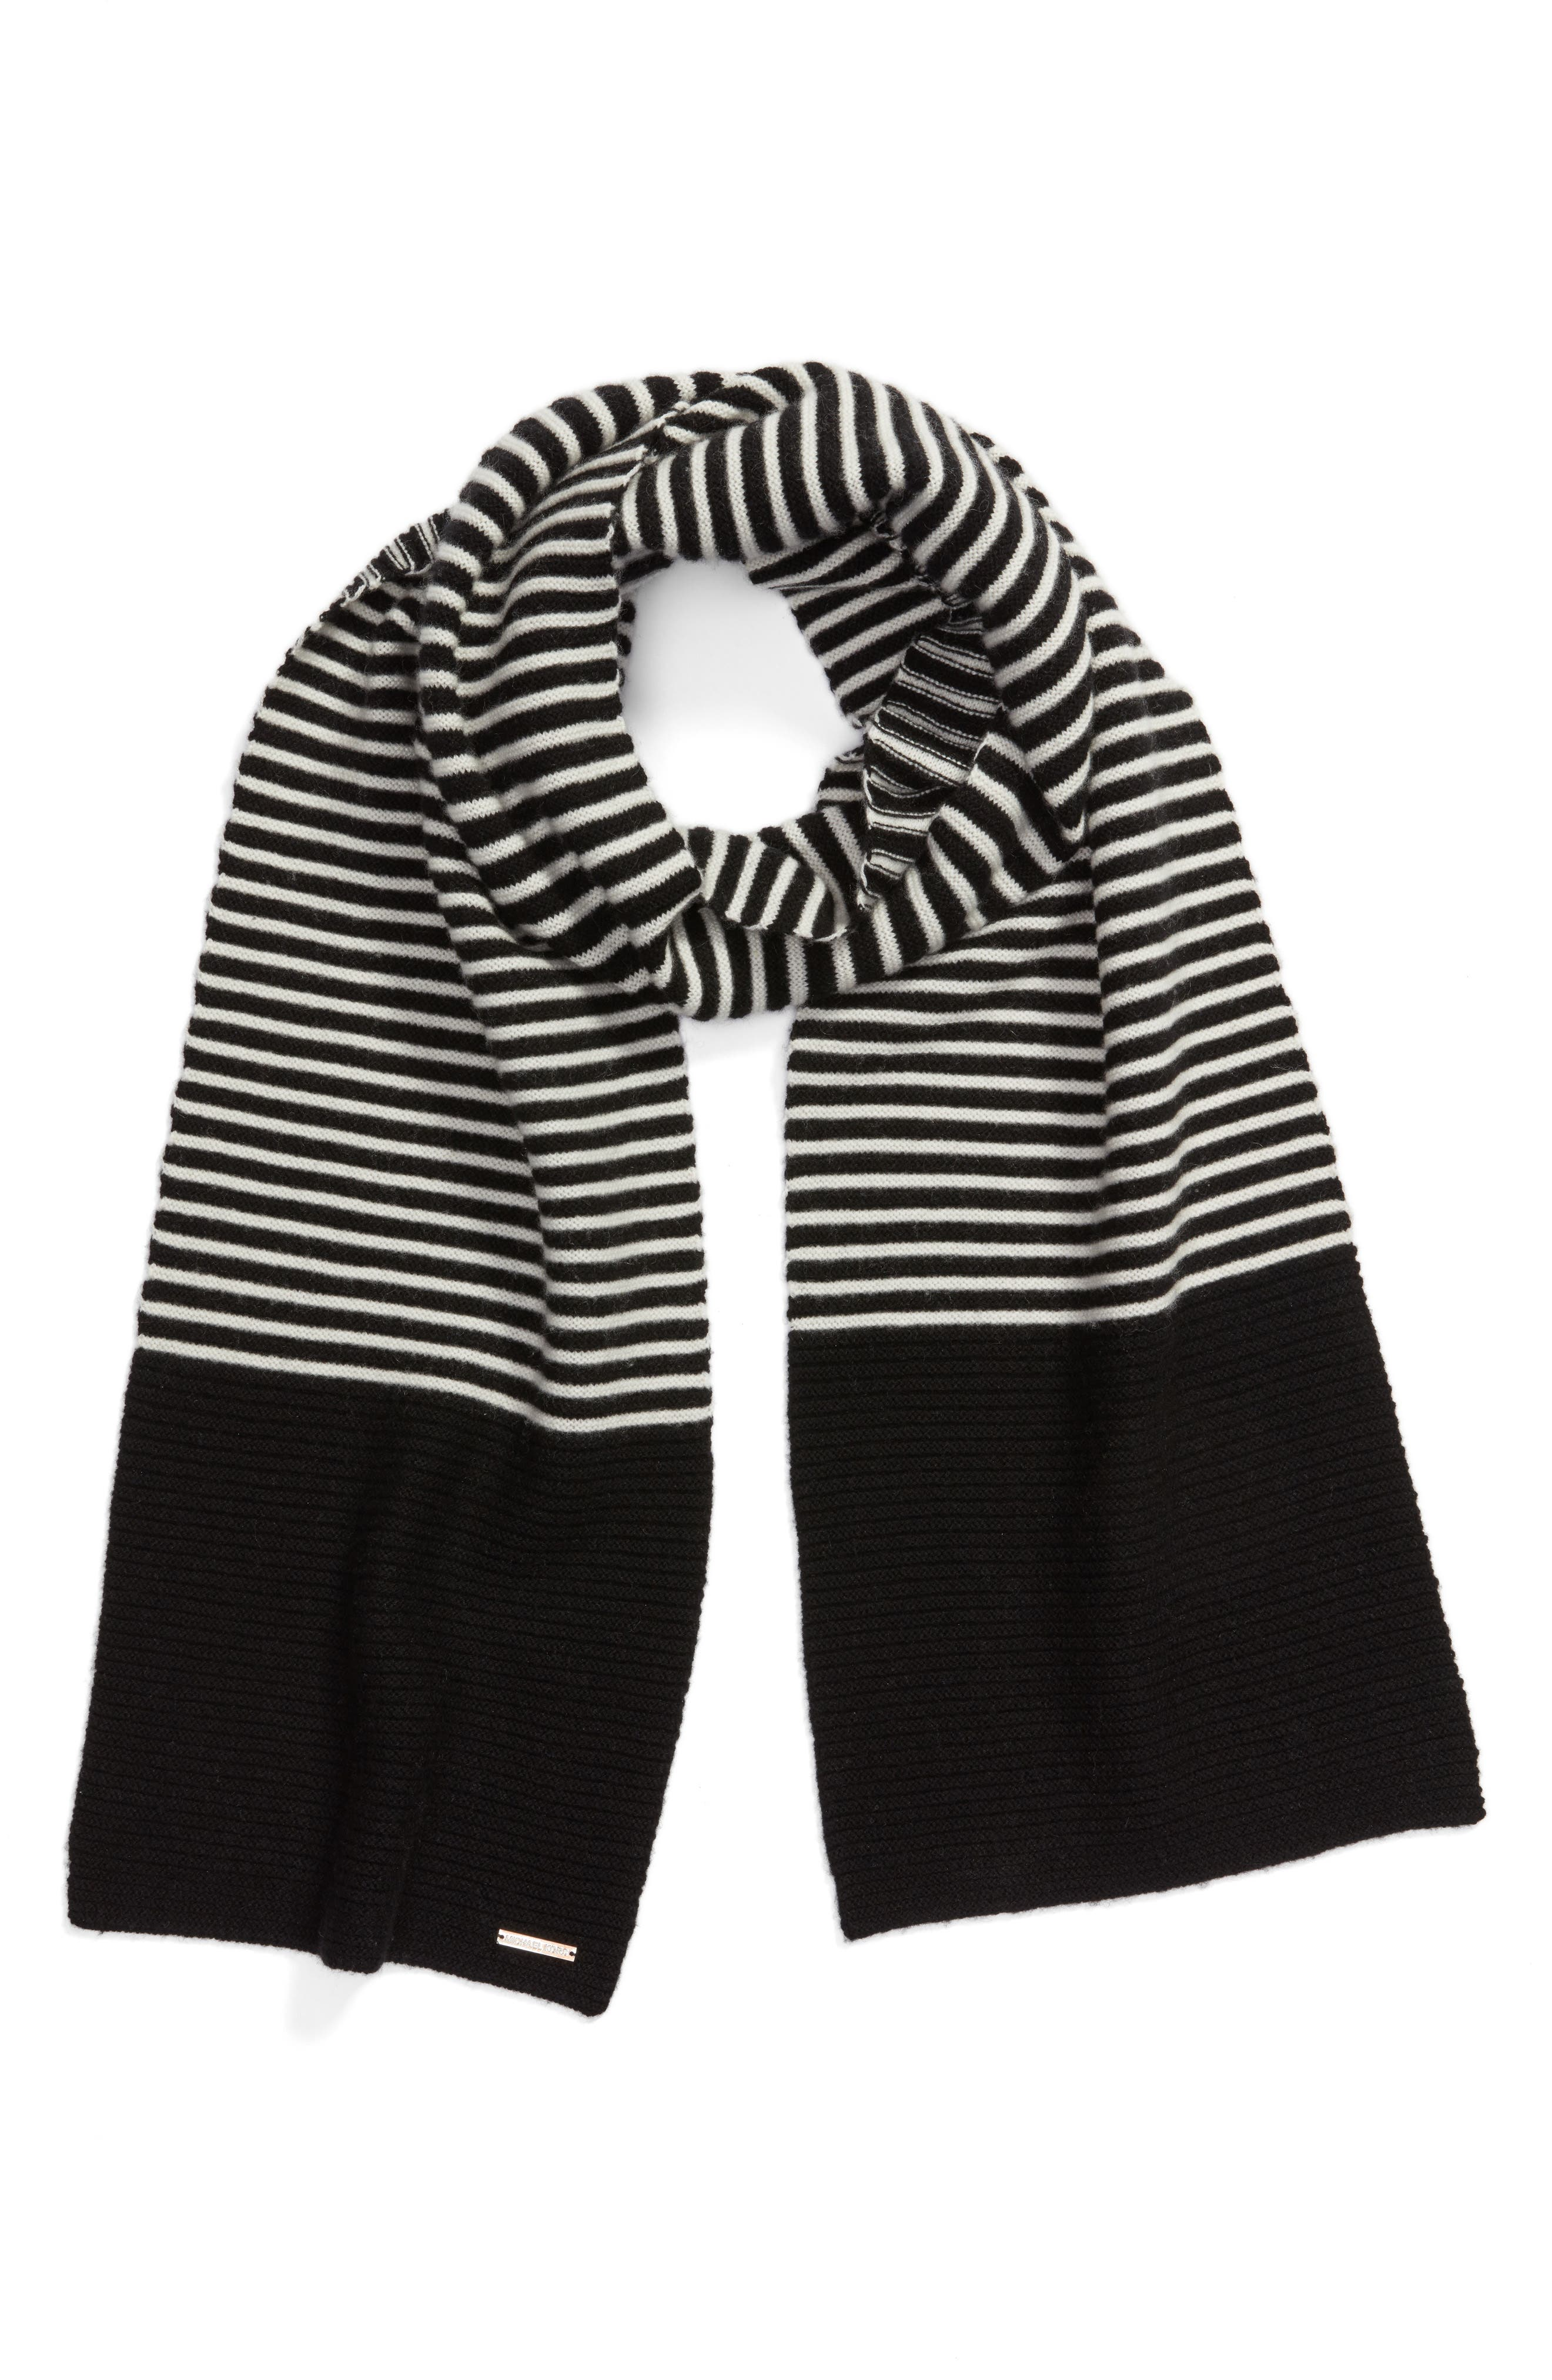 Double Links Wool & Cashmere Scarf,                             Alternate thumbnail 3, color,                             Black/ Cream